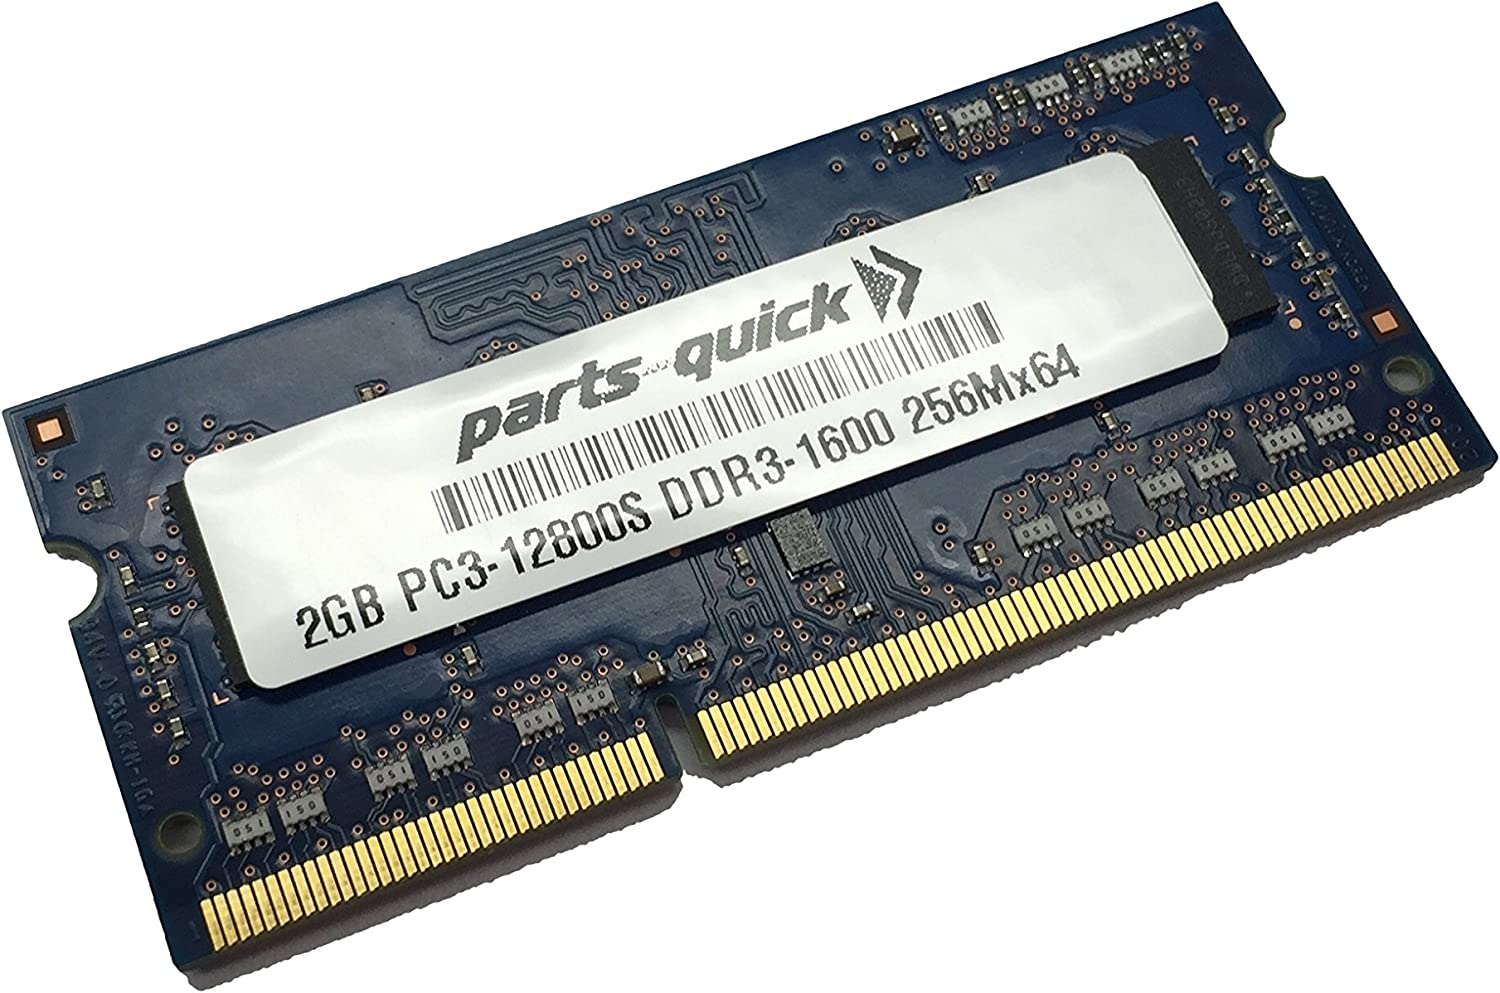 2GB Memory for Dell Inspiron One 2330 DDR3 PC3-12800 SODIMM RAM (PARTS-QUICK Brand)